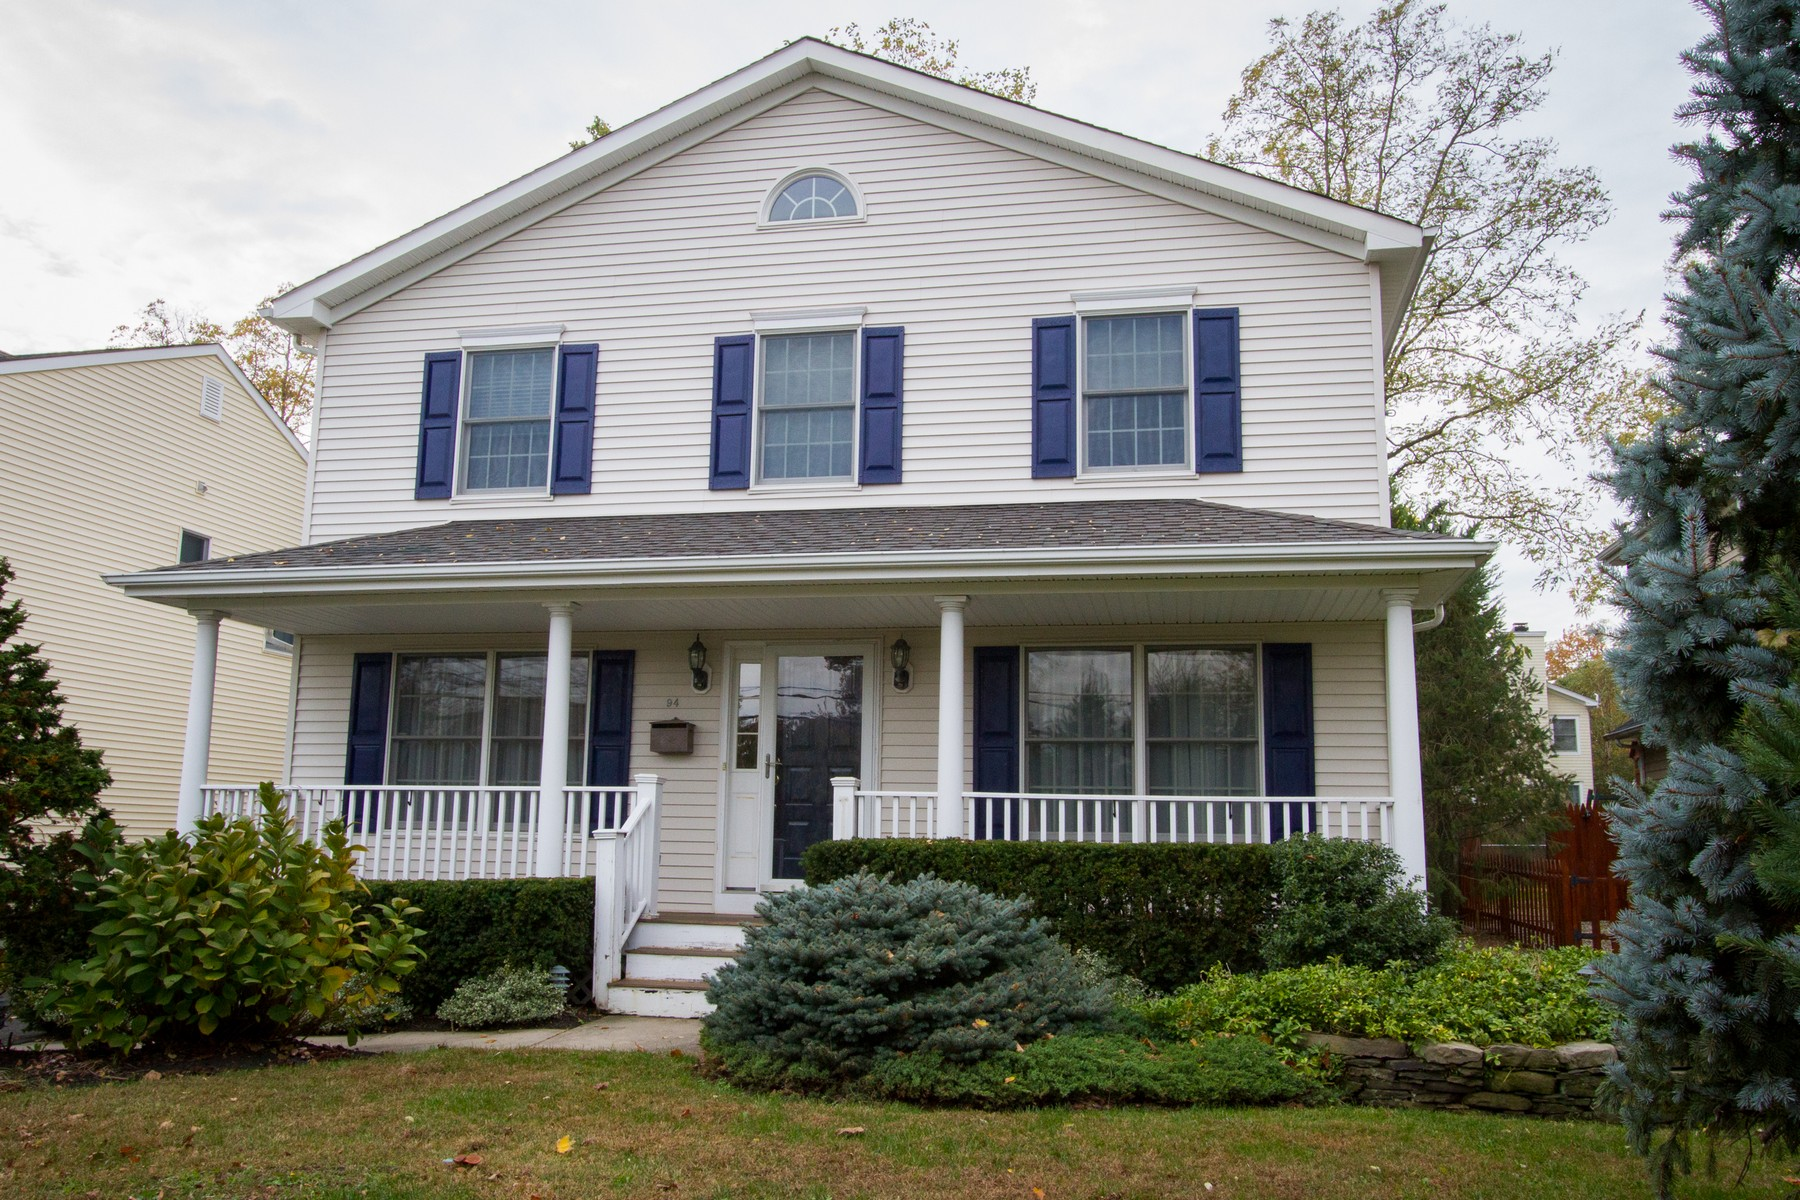 Single Family Home for Sale at A Welcoming Front Porch 94 Avenue of Two Rivers Rumson, New Jersey 07760 United States